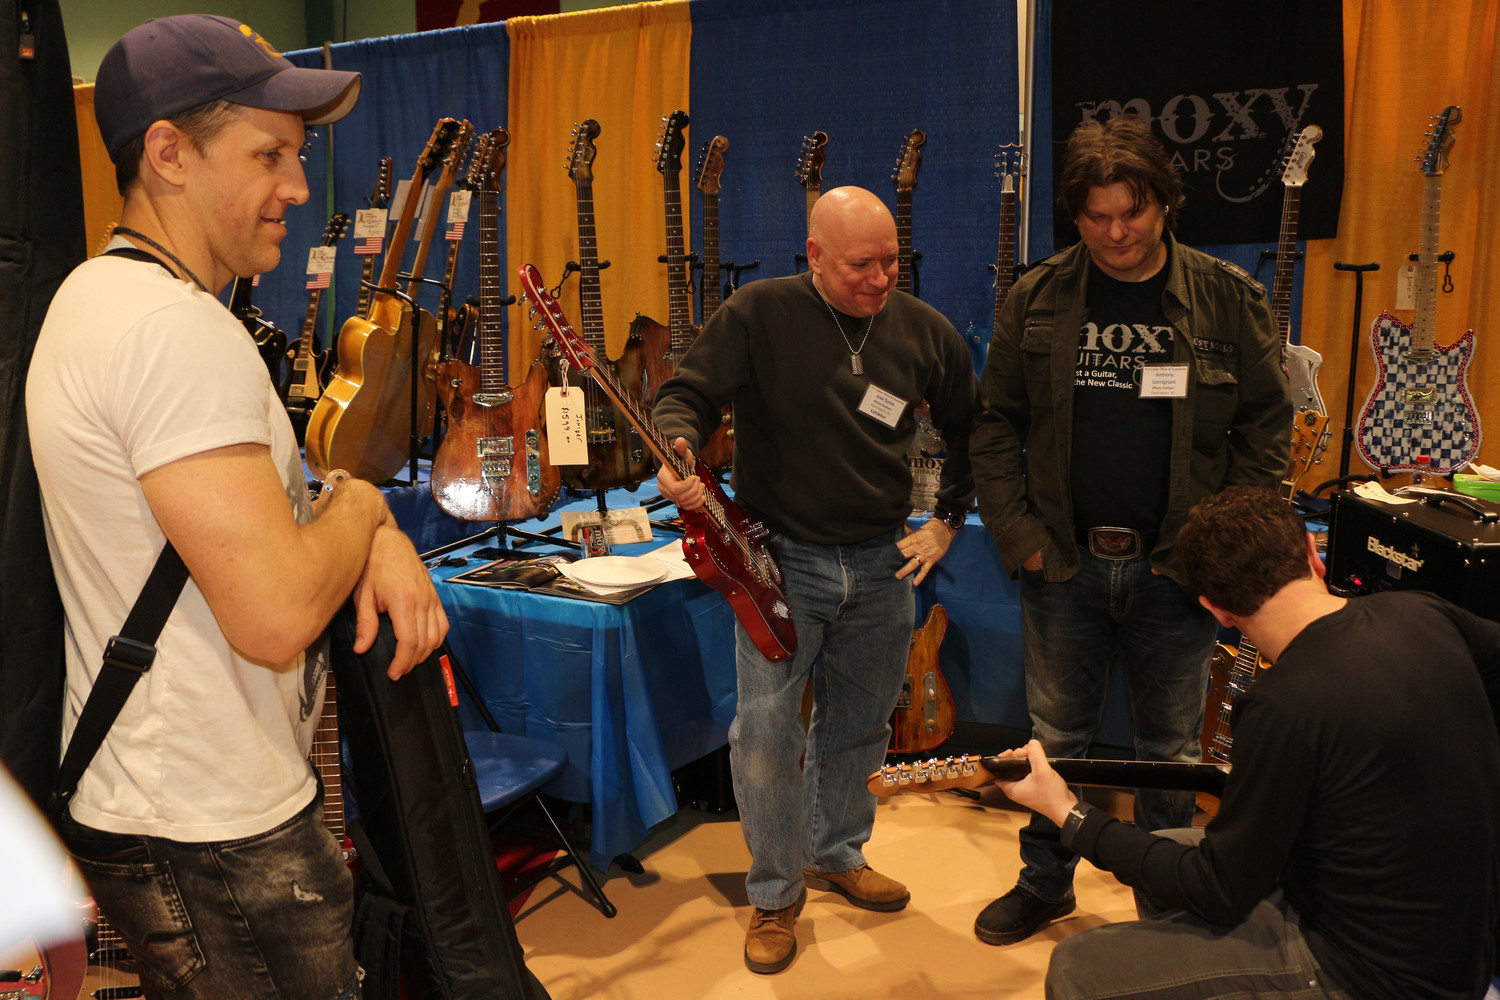 Scott Fisher, left and Michael Lisante expressed their interest in Jose Suros and Anthony Gemignani's, right, Moxy Guitars — custom worn and relic styled guitars.